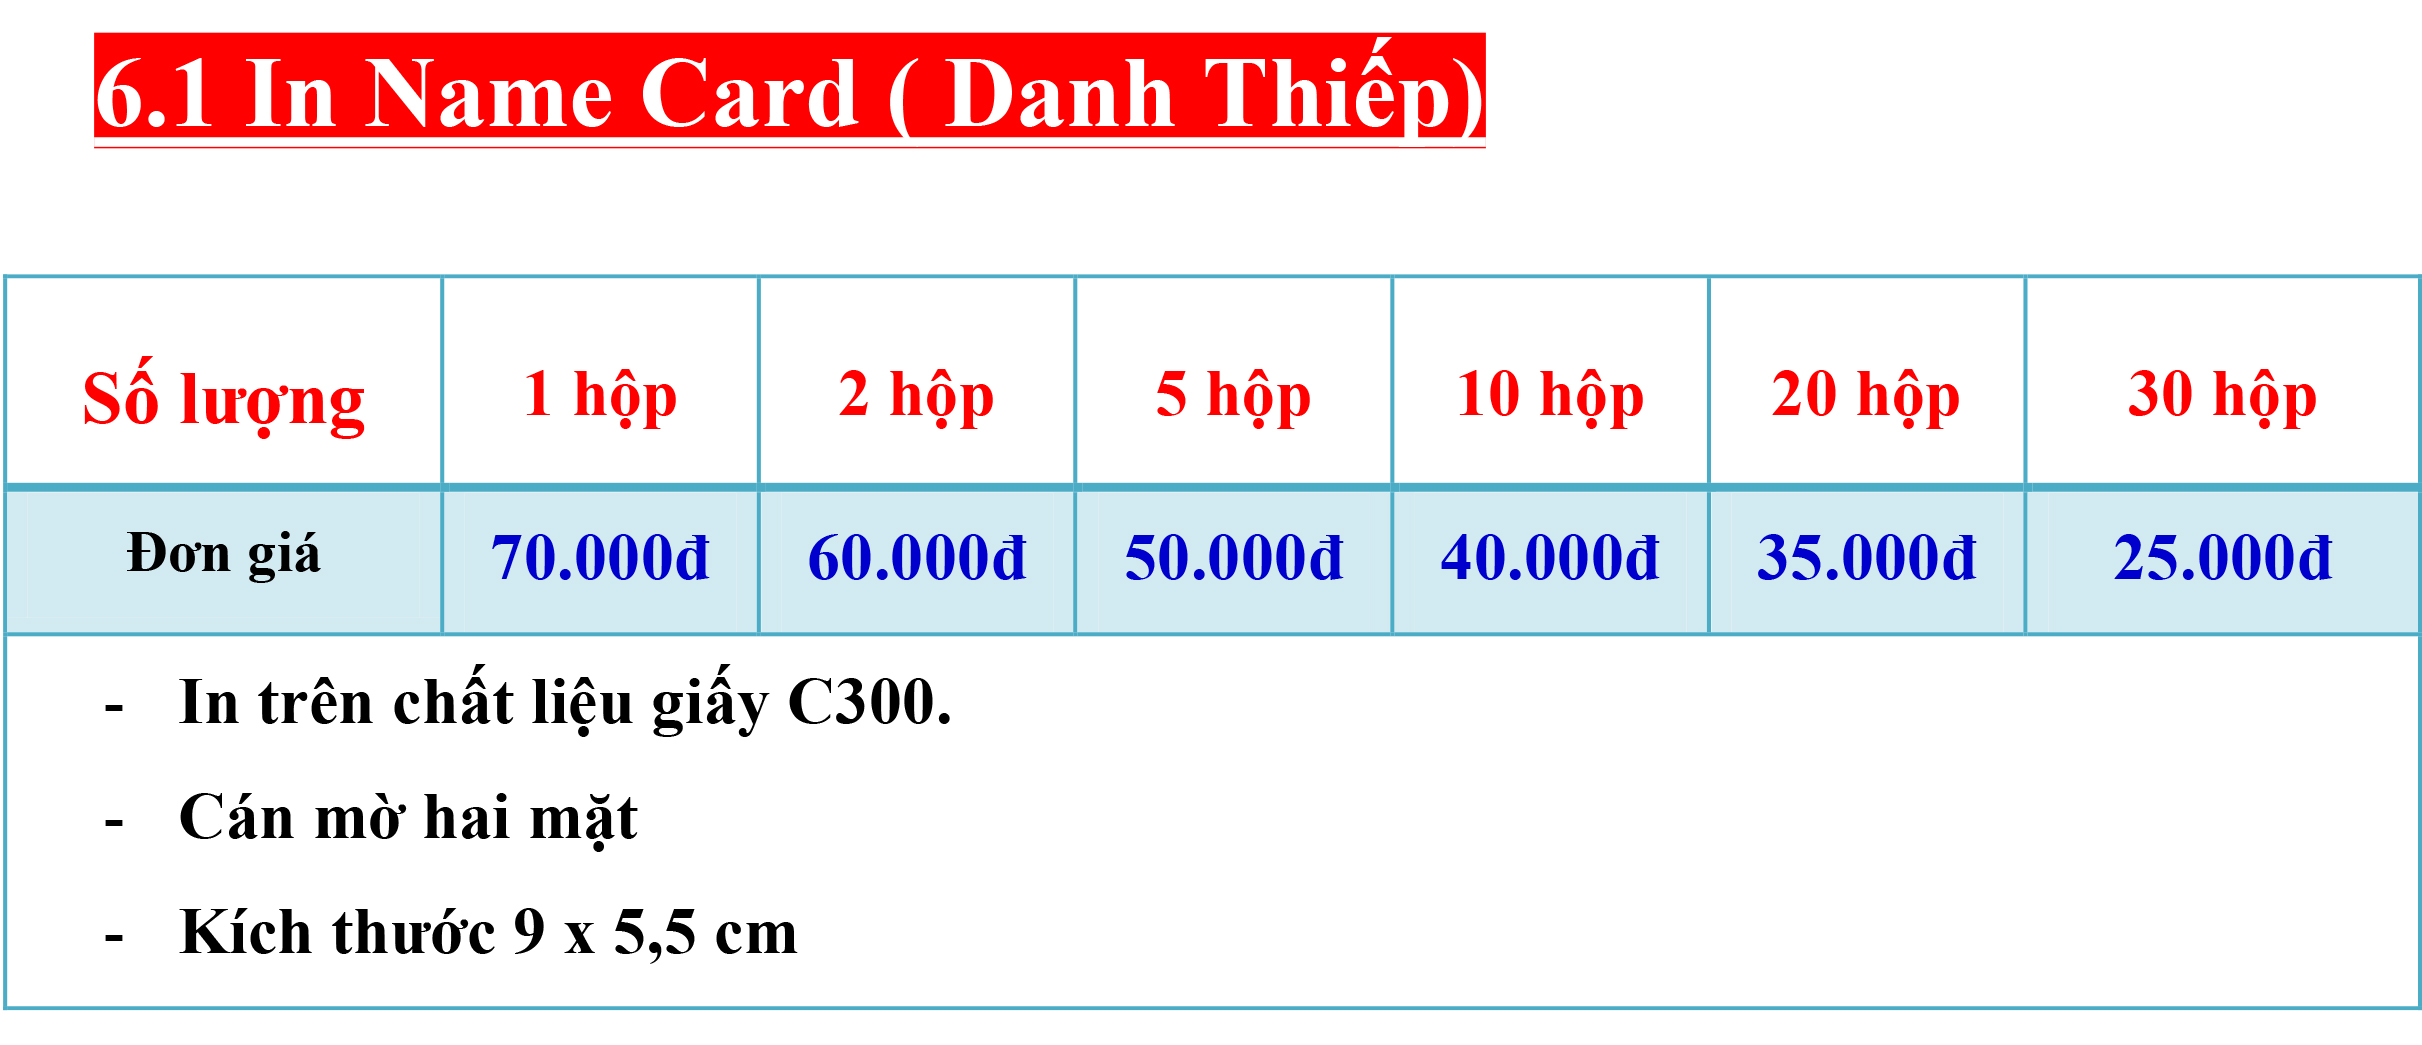 6.1 In Name Card ( Danh Thiếp).